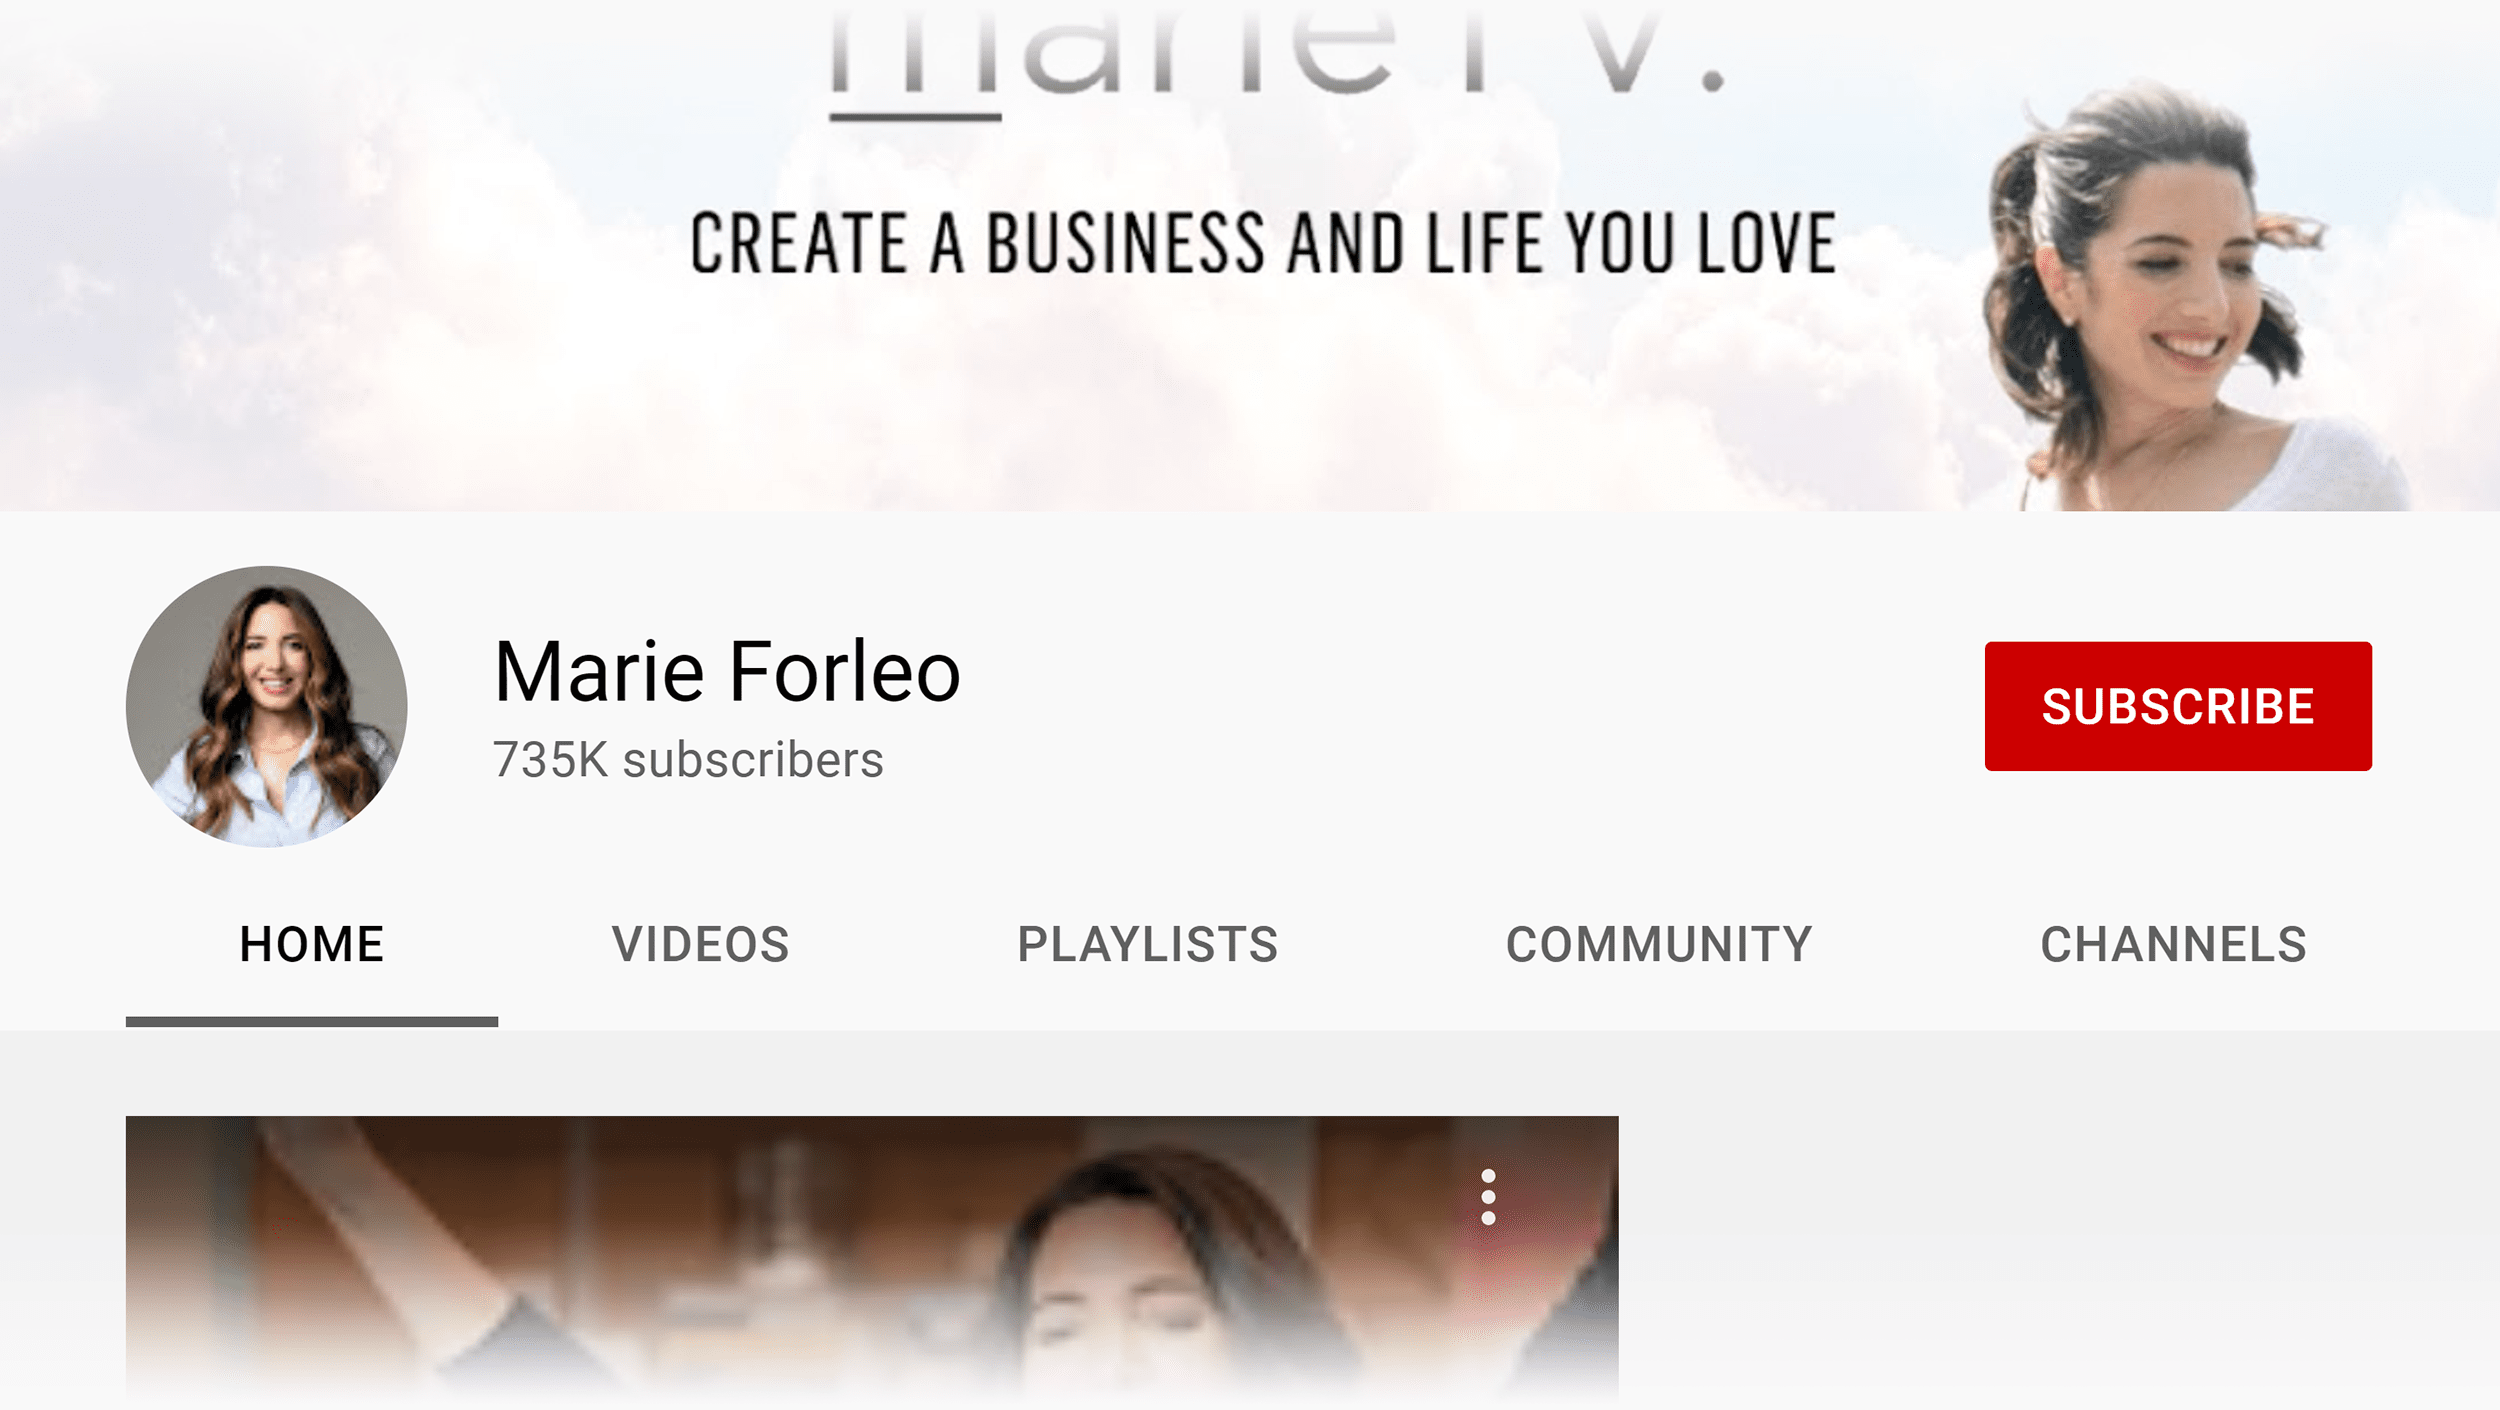 Marie Forleo channel icon